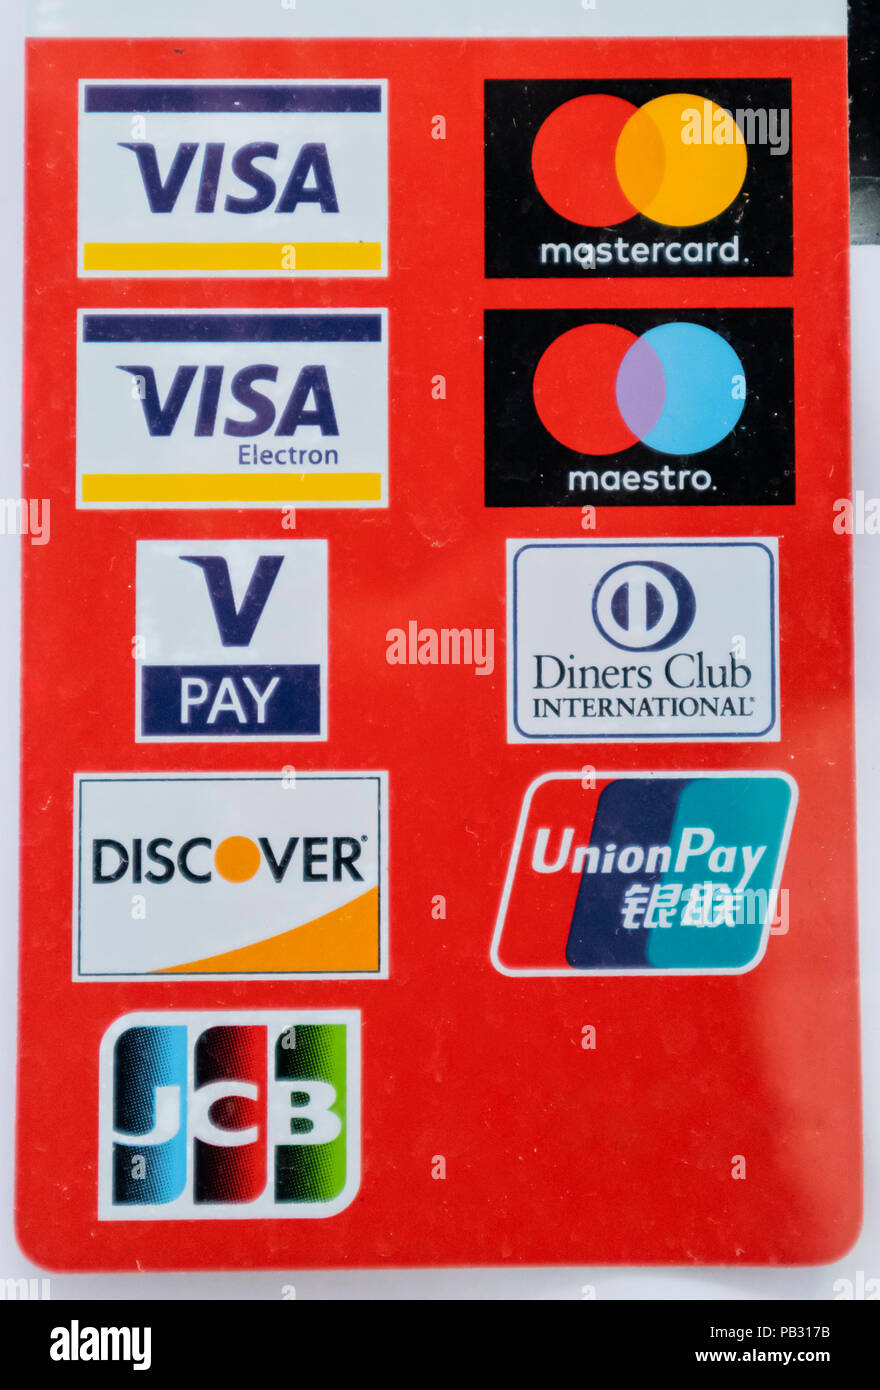 With visa and mastercard, it is easy to identify the issuing bank of each card—the bank's name is always on the card. Credit Card Brands High Resolution Stock Photography And Images Alamy